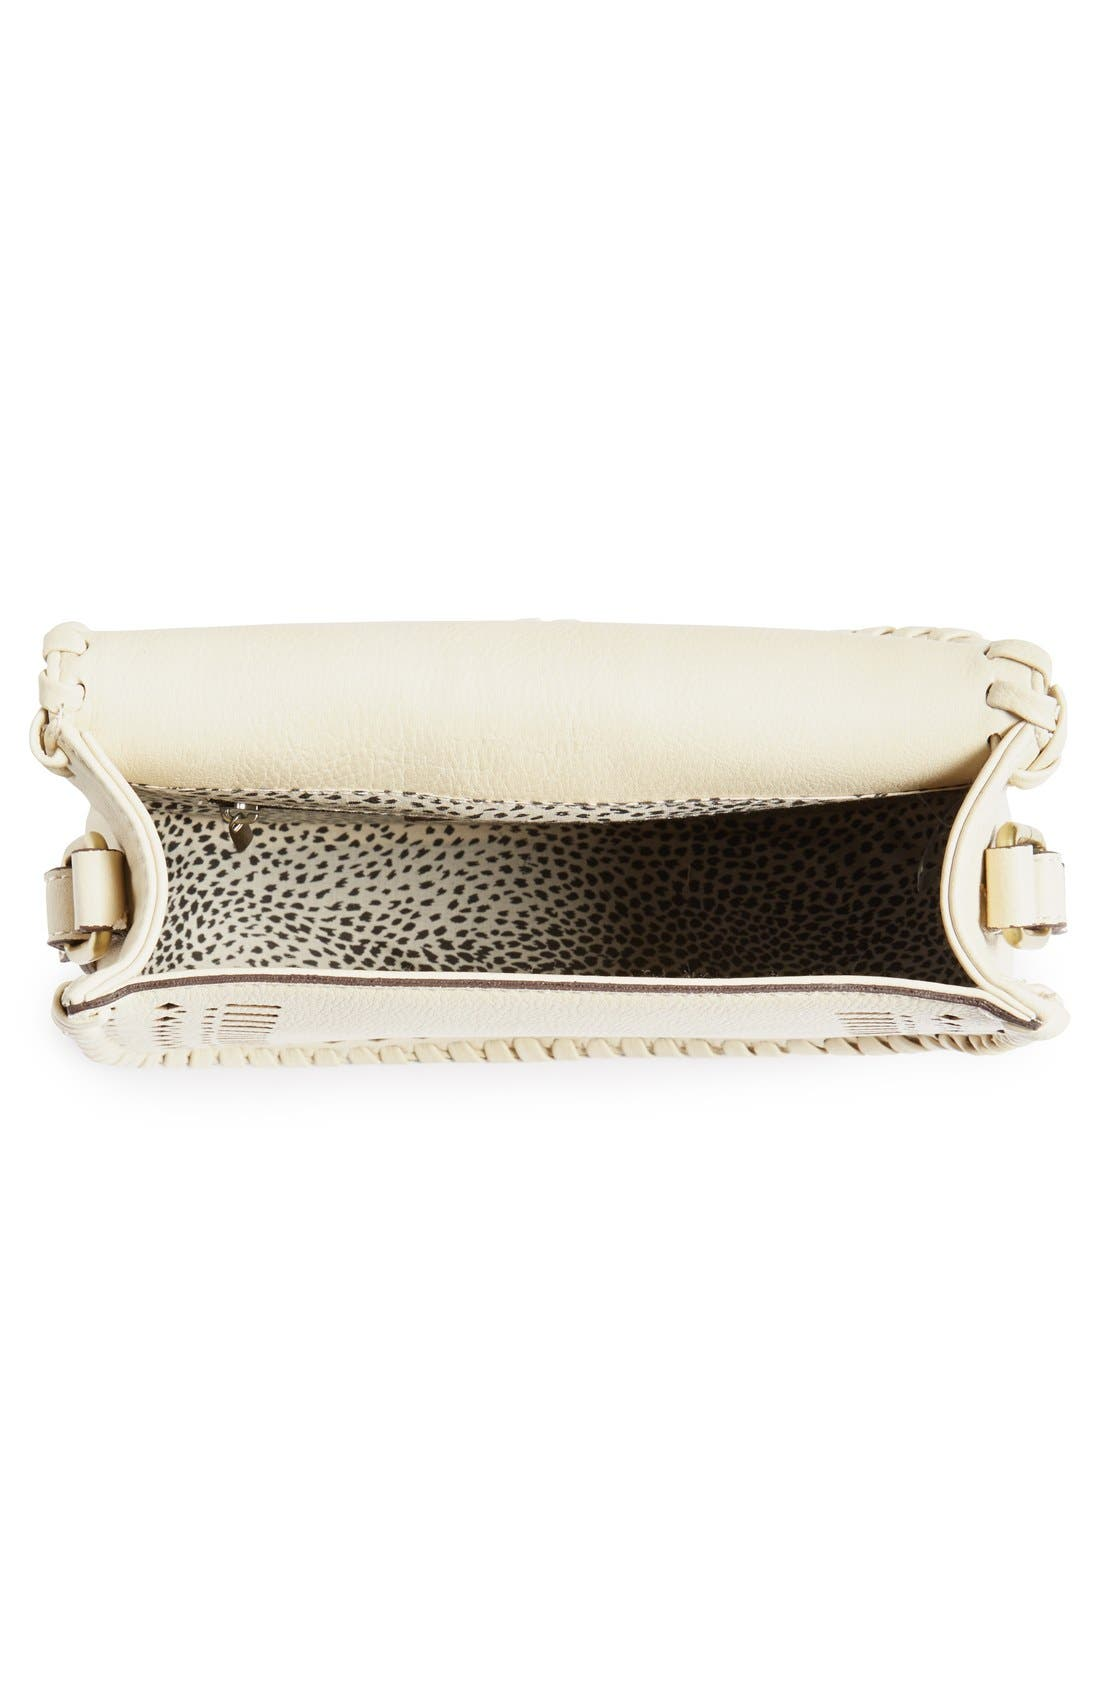 'Kianna' Perforated Faux Leather Crossbody Bag,                             Alternate thumbnail 3, color,                             Ivory